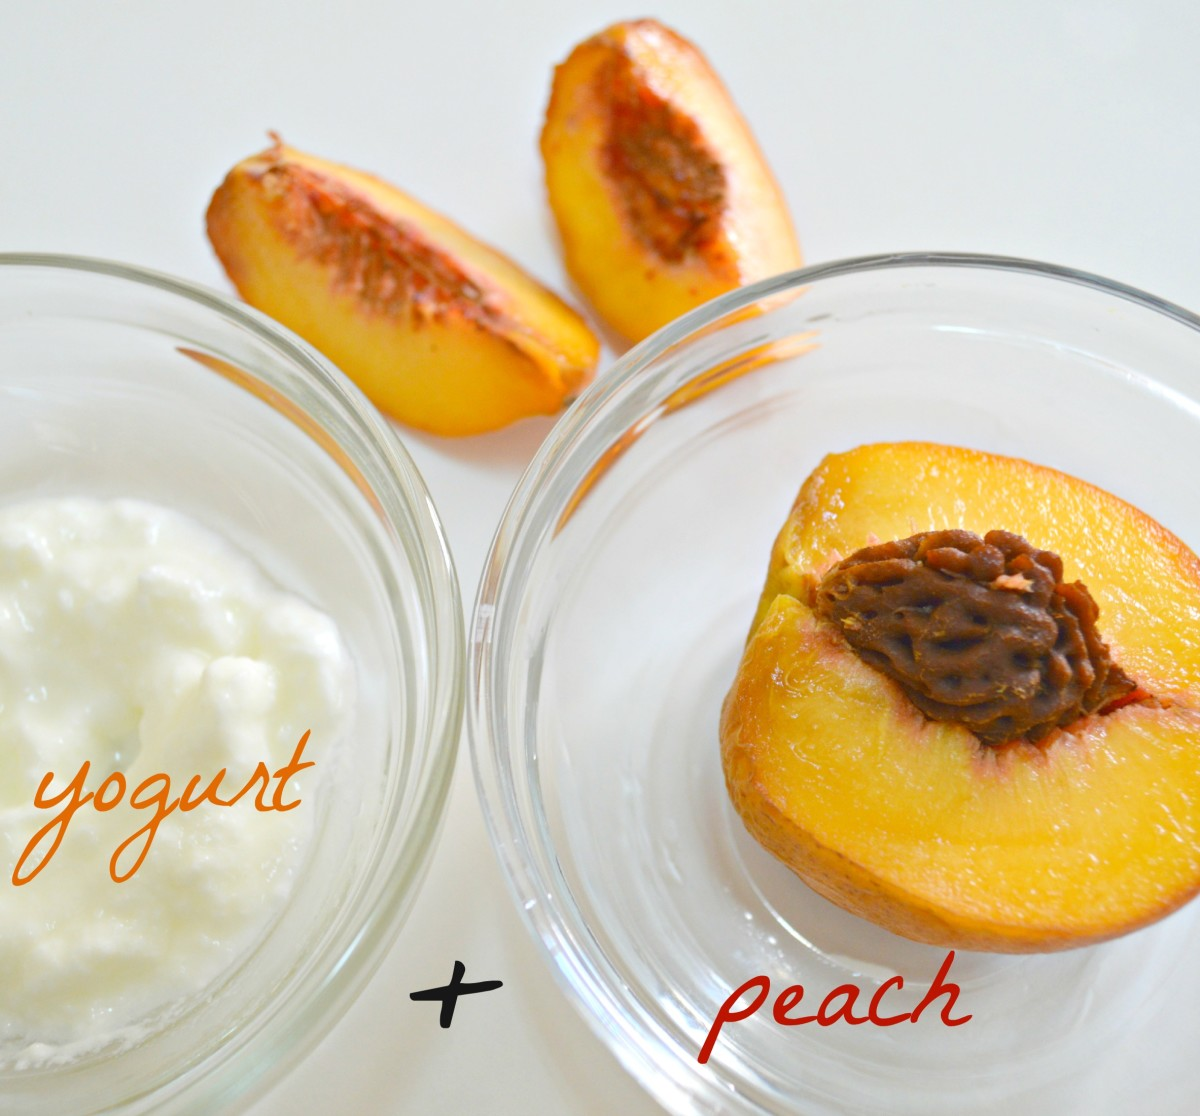 Peach face mask - smells like heaven.